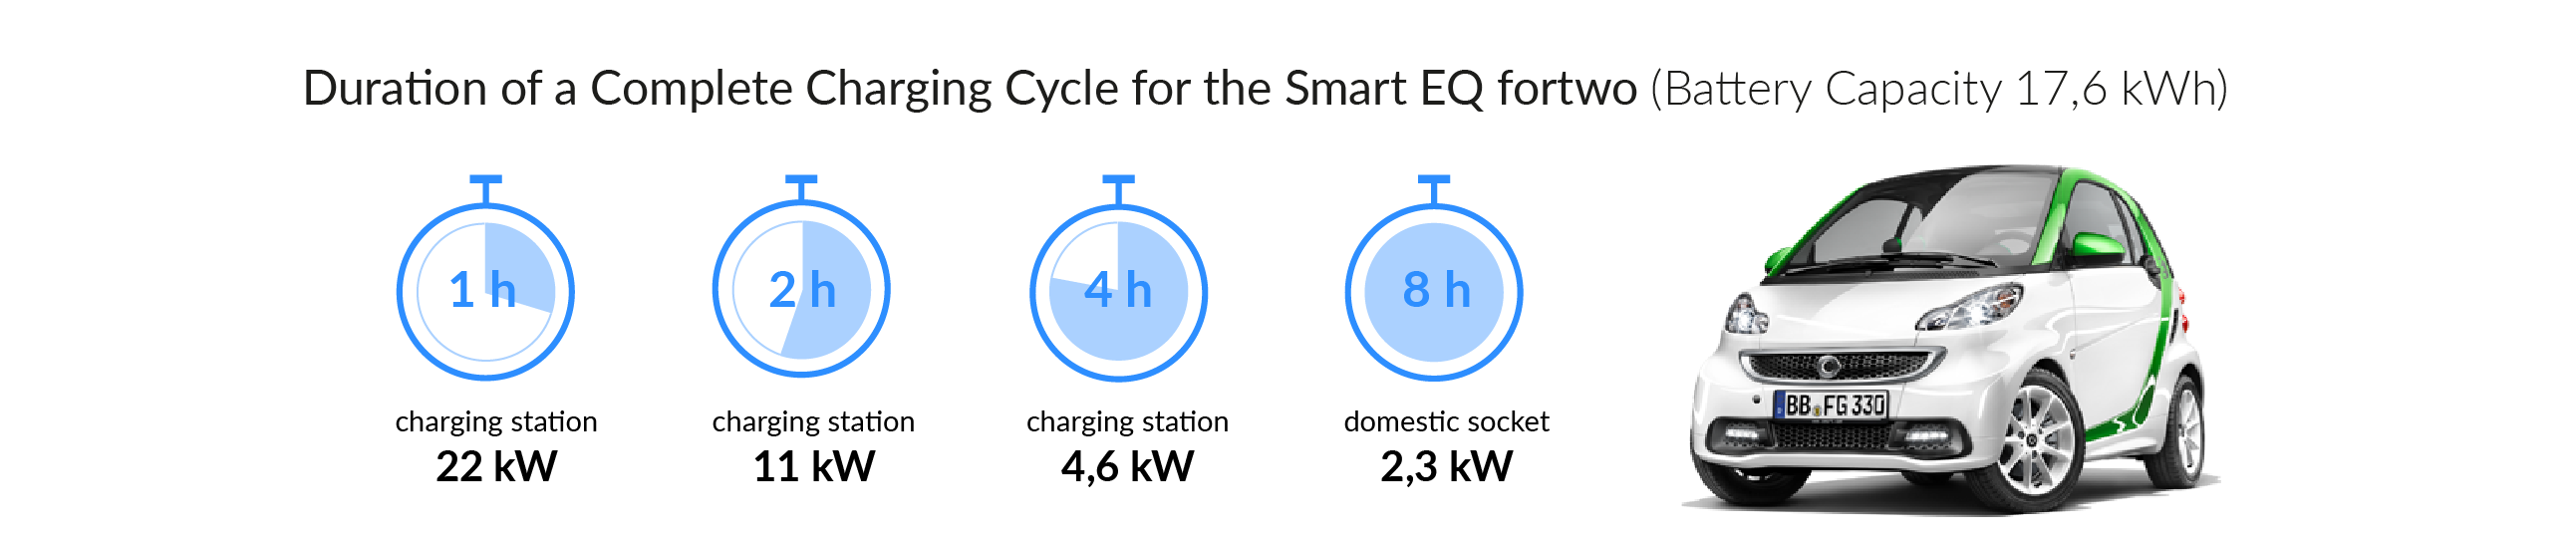 Charging time of the smart EQ fortwo